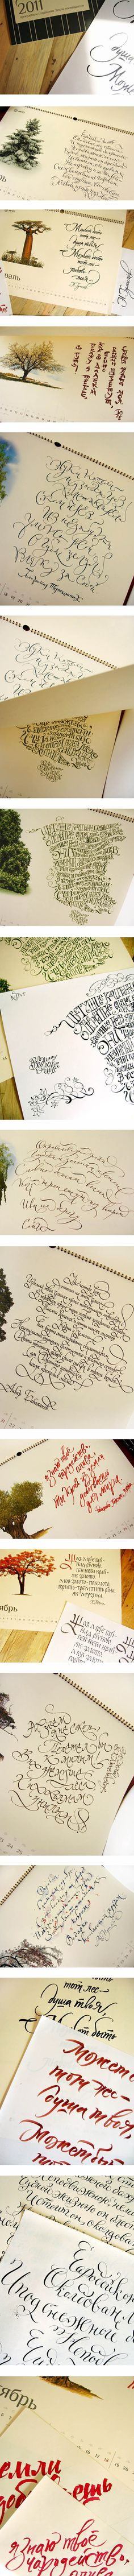 Cyrillic Calligraphy for the calendar.  by Marina Marjina, via Behance